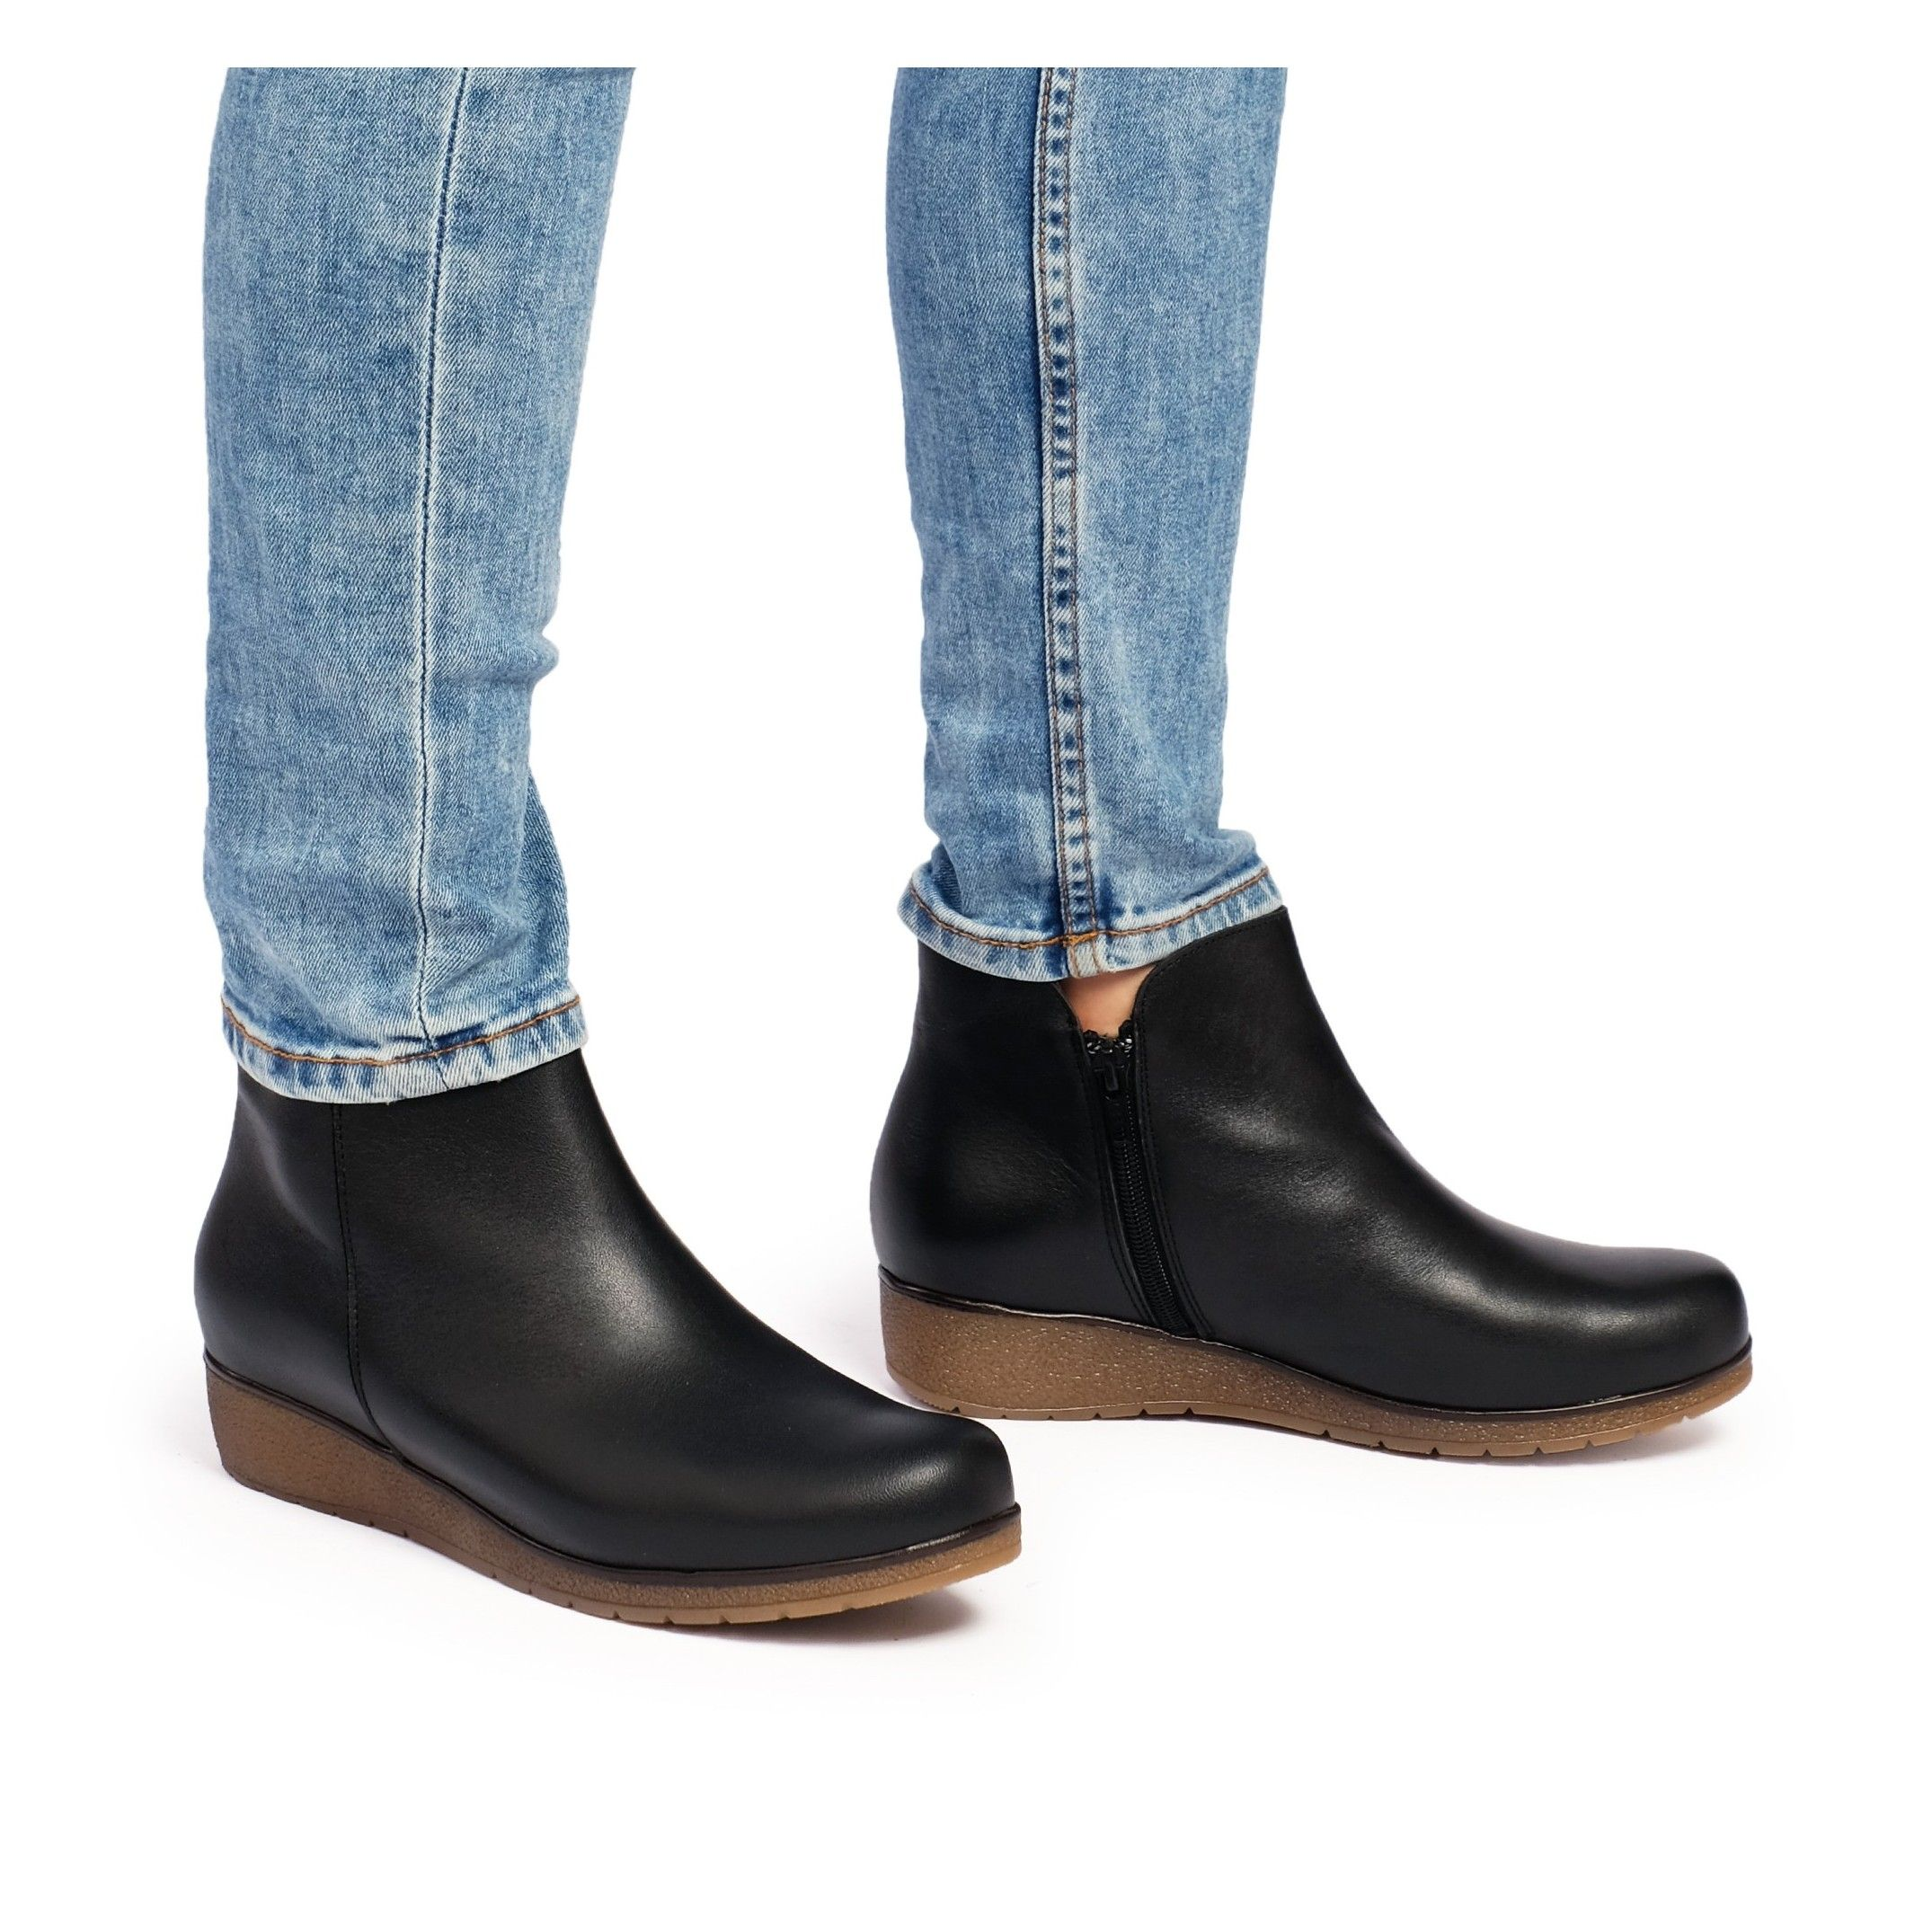 Castellanisimos Leather Ankle Black Boot Women Winter Shoes